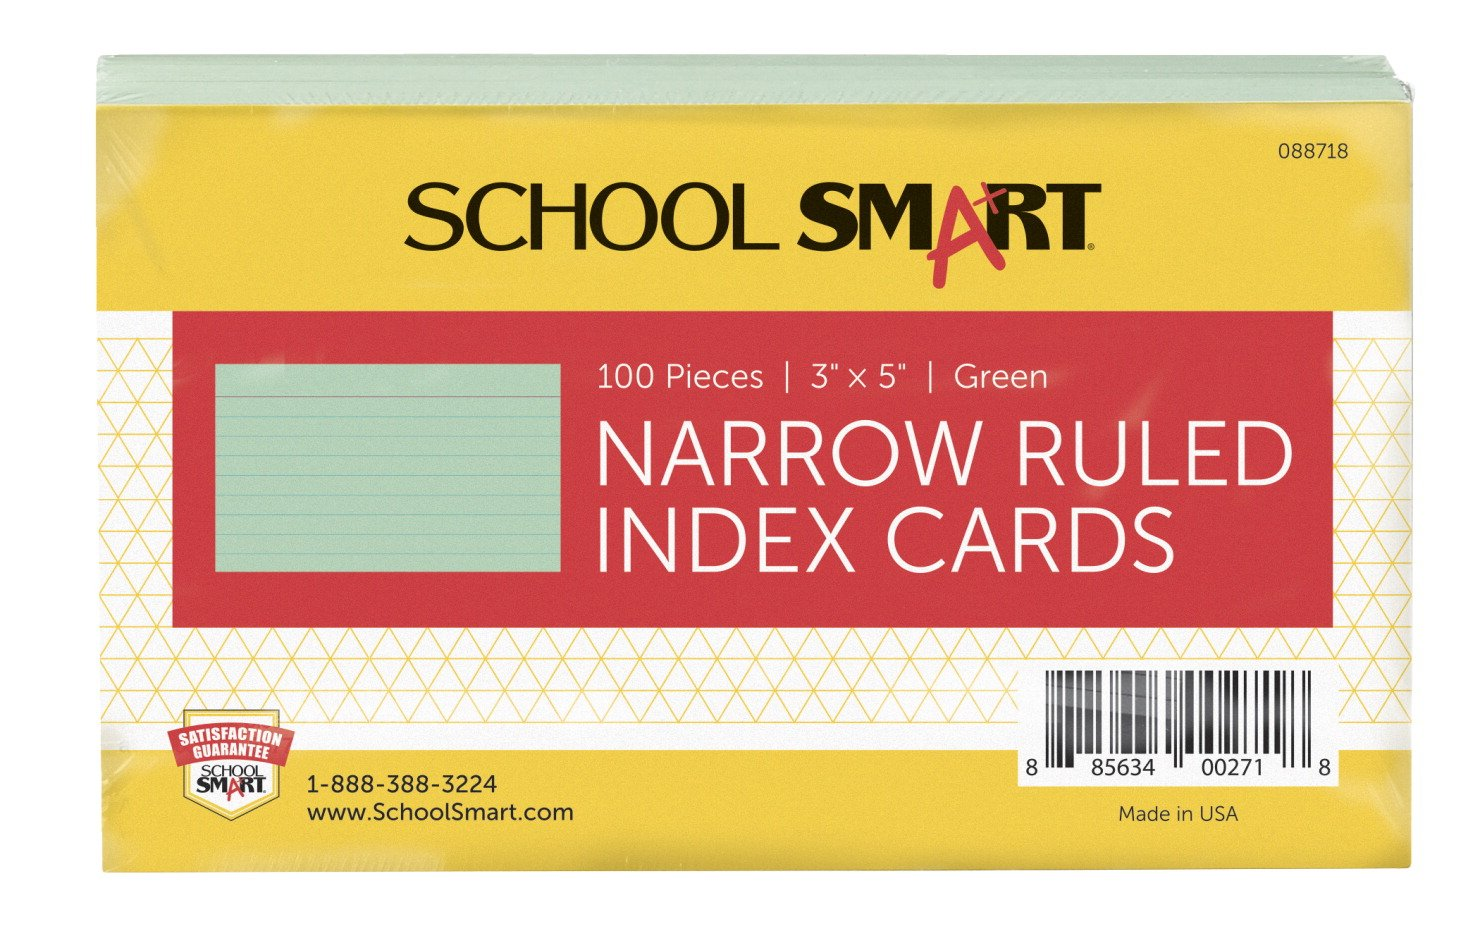 School Smart Heavyweight Ruled Index Cards - 3 x 5 inches - Pack of 100 - Green